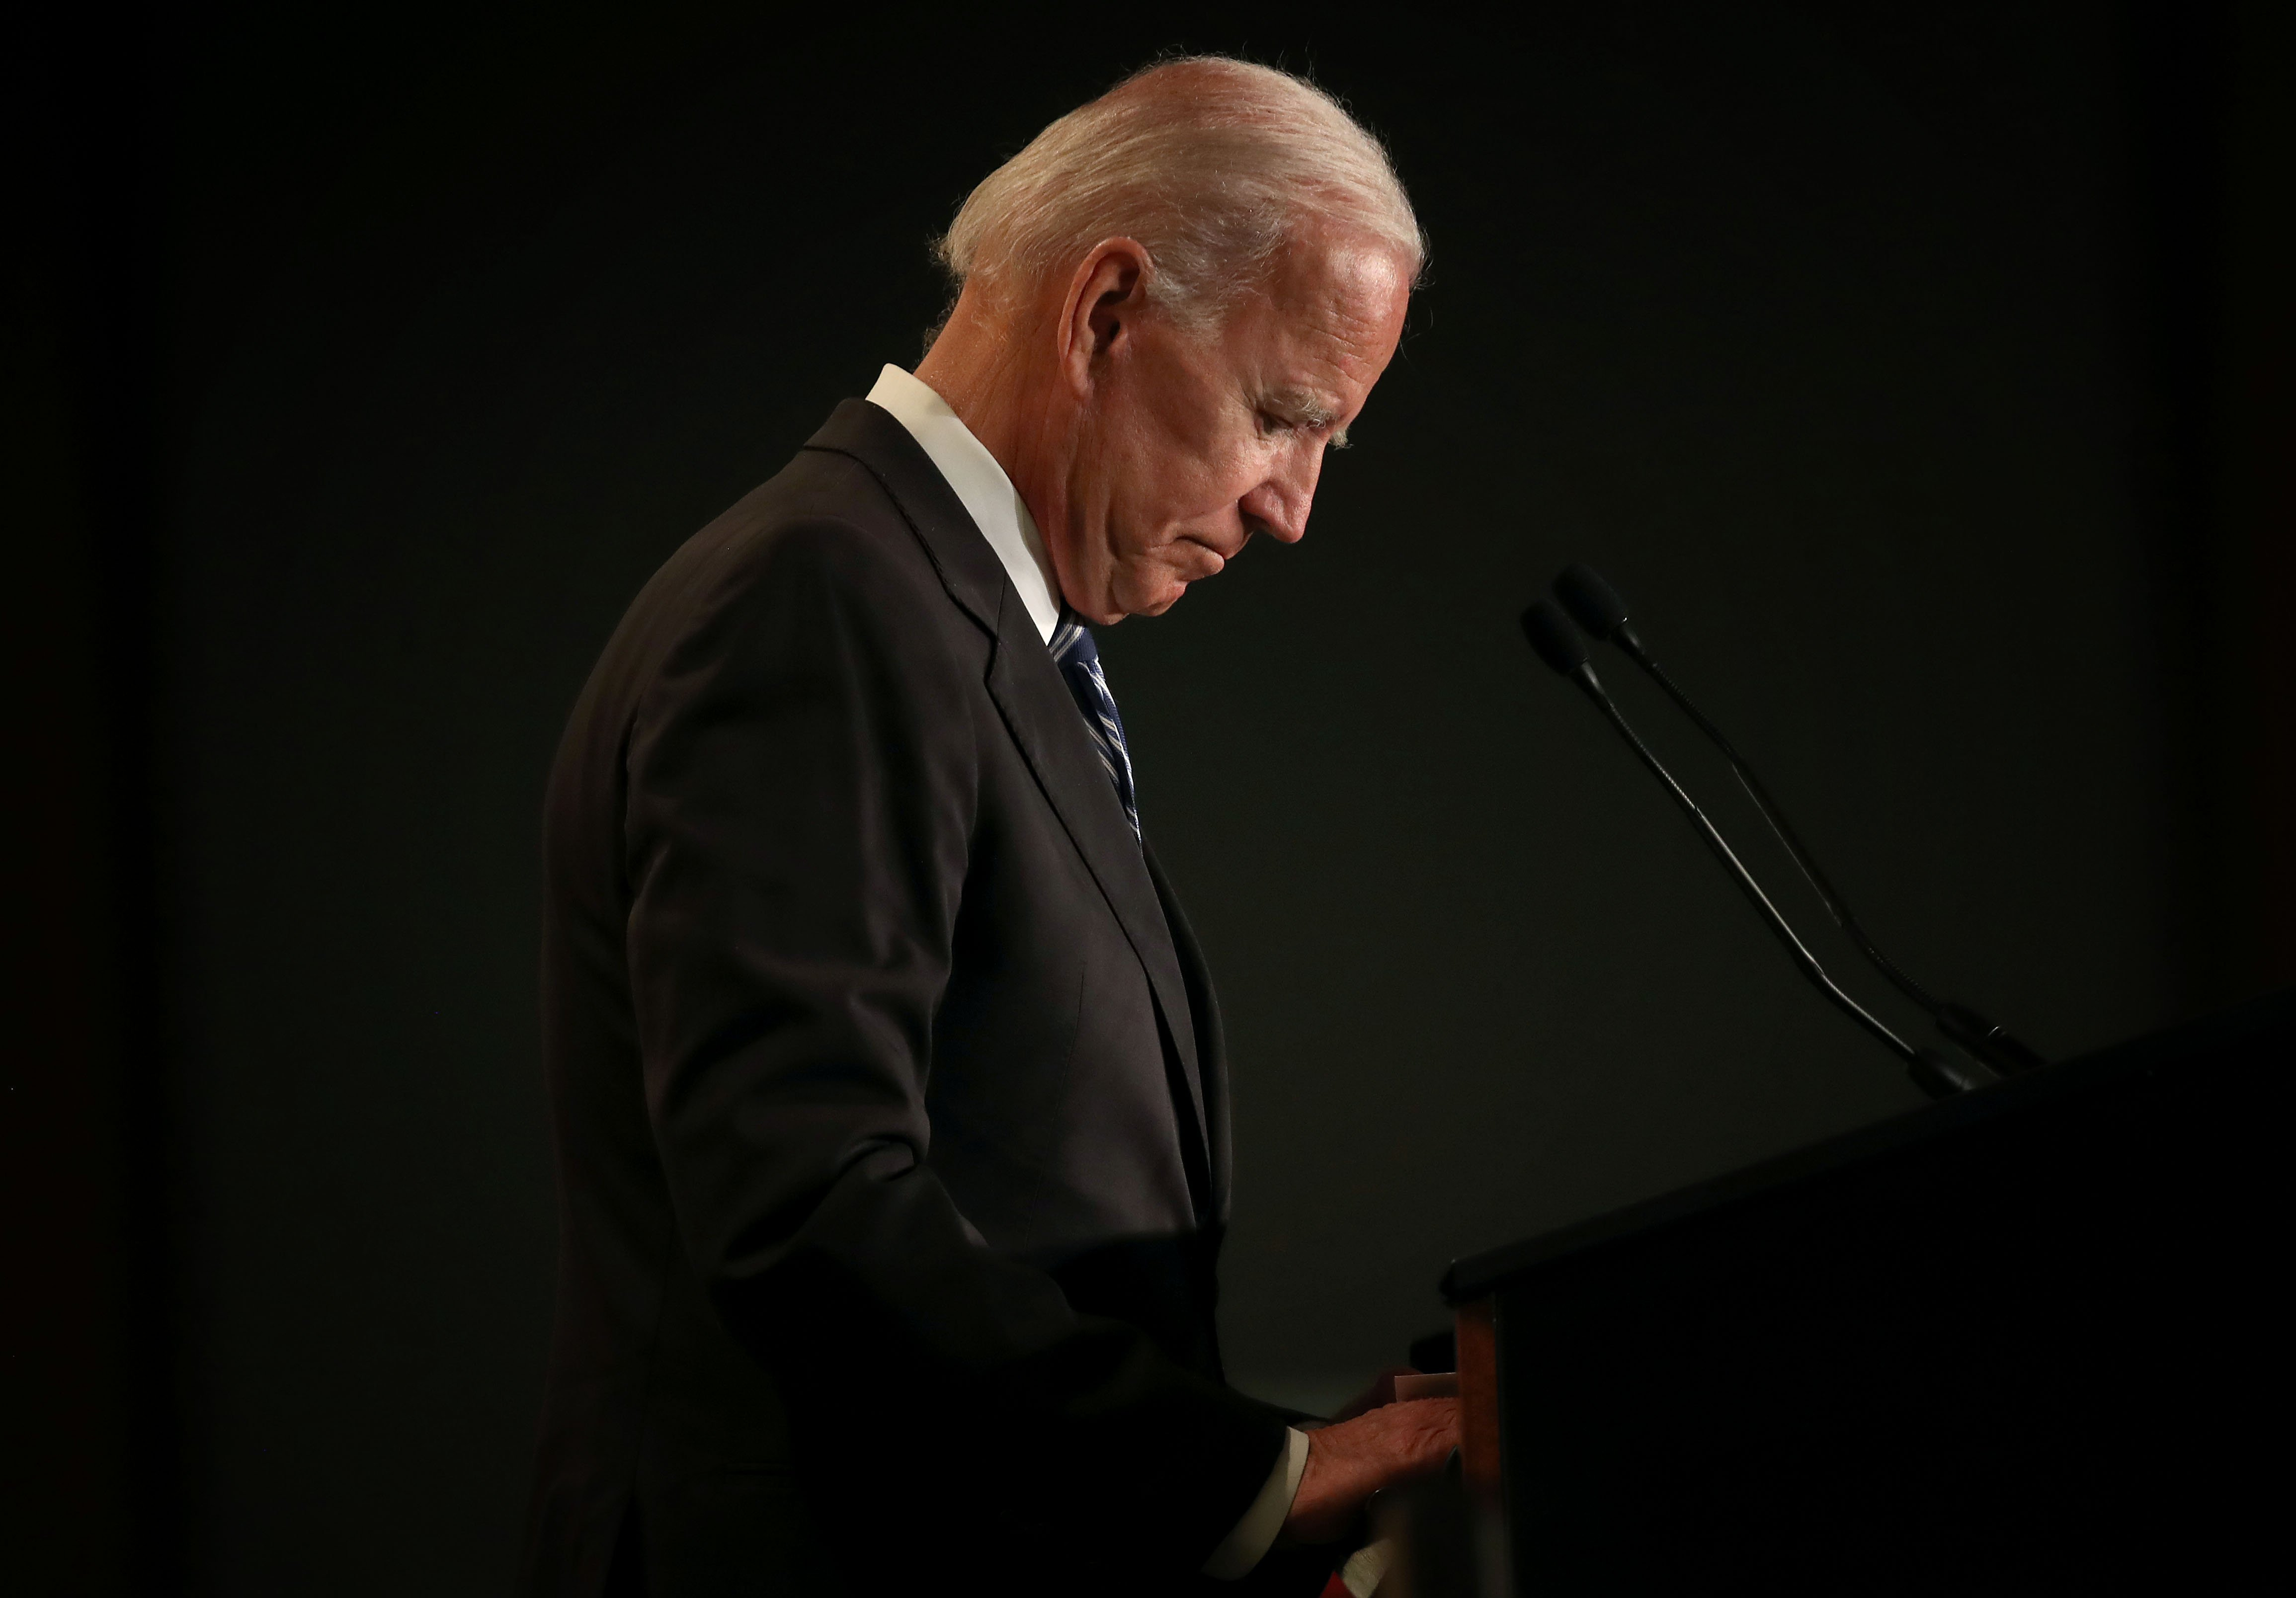 Joe Biden at the International Association of Fire Fighters legislative conference in Washington, DC | Photo: Getty Images